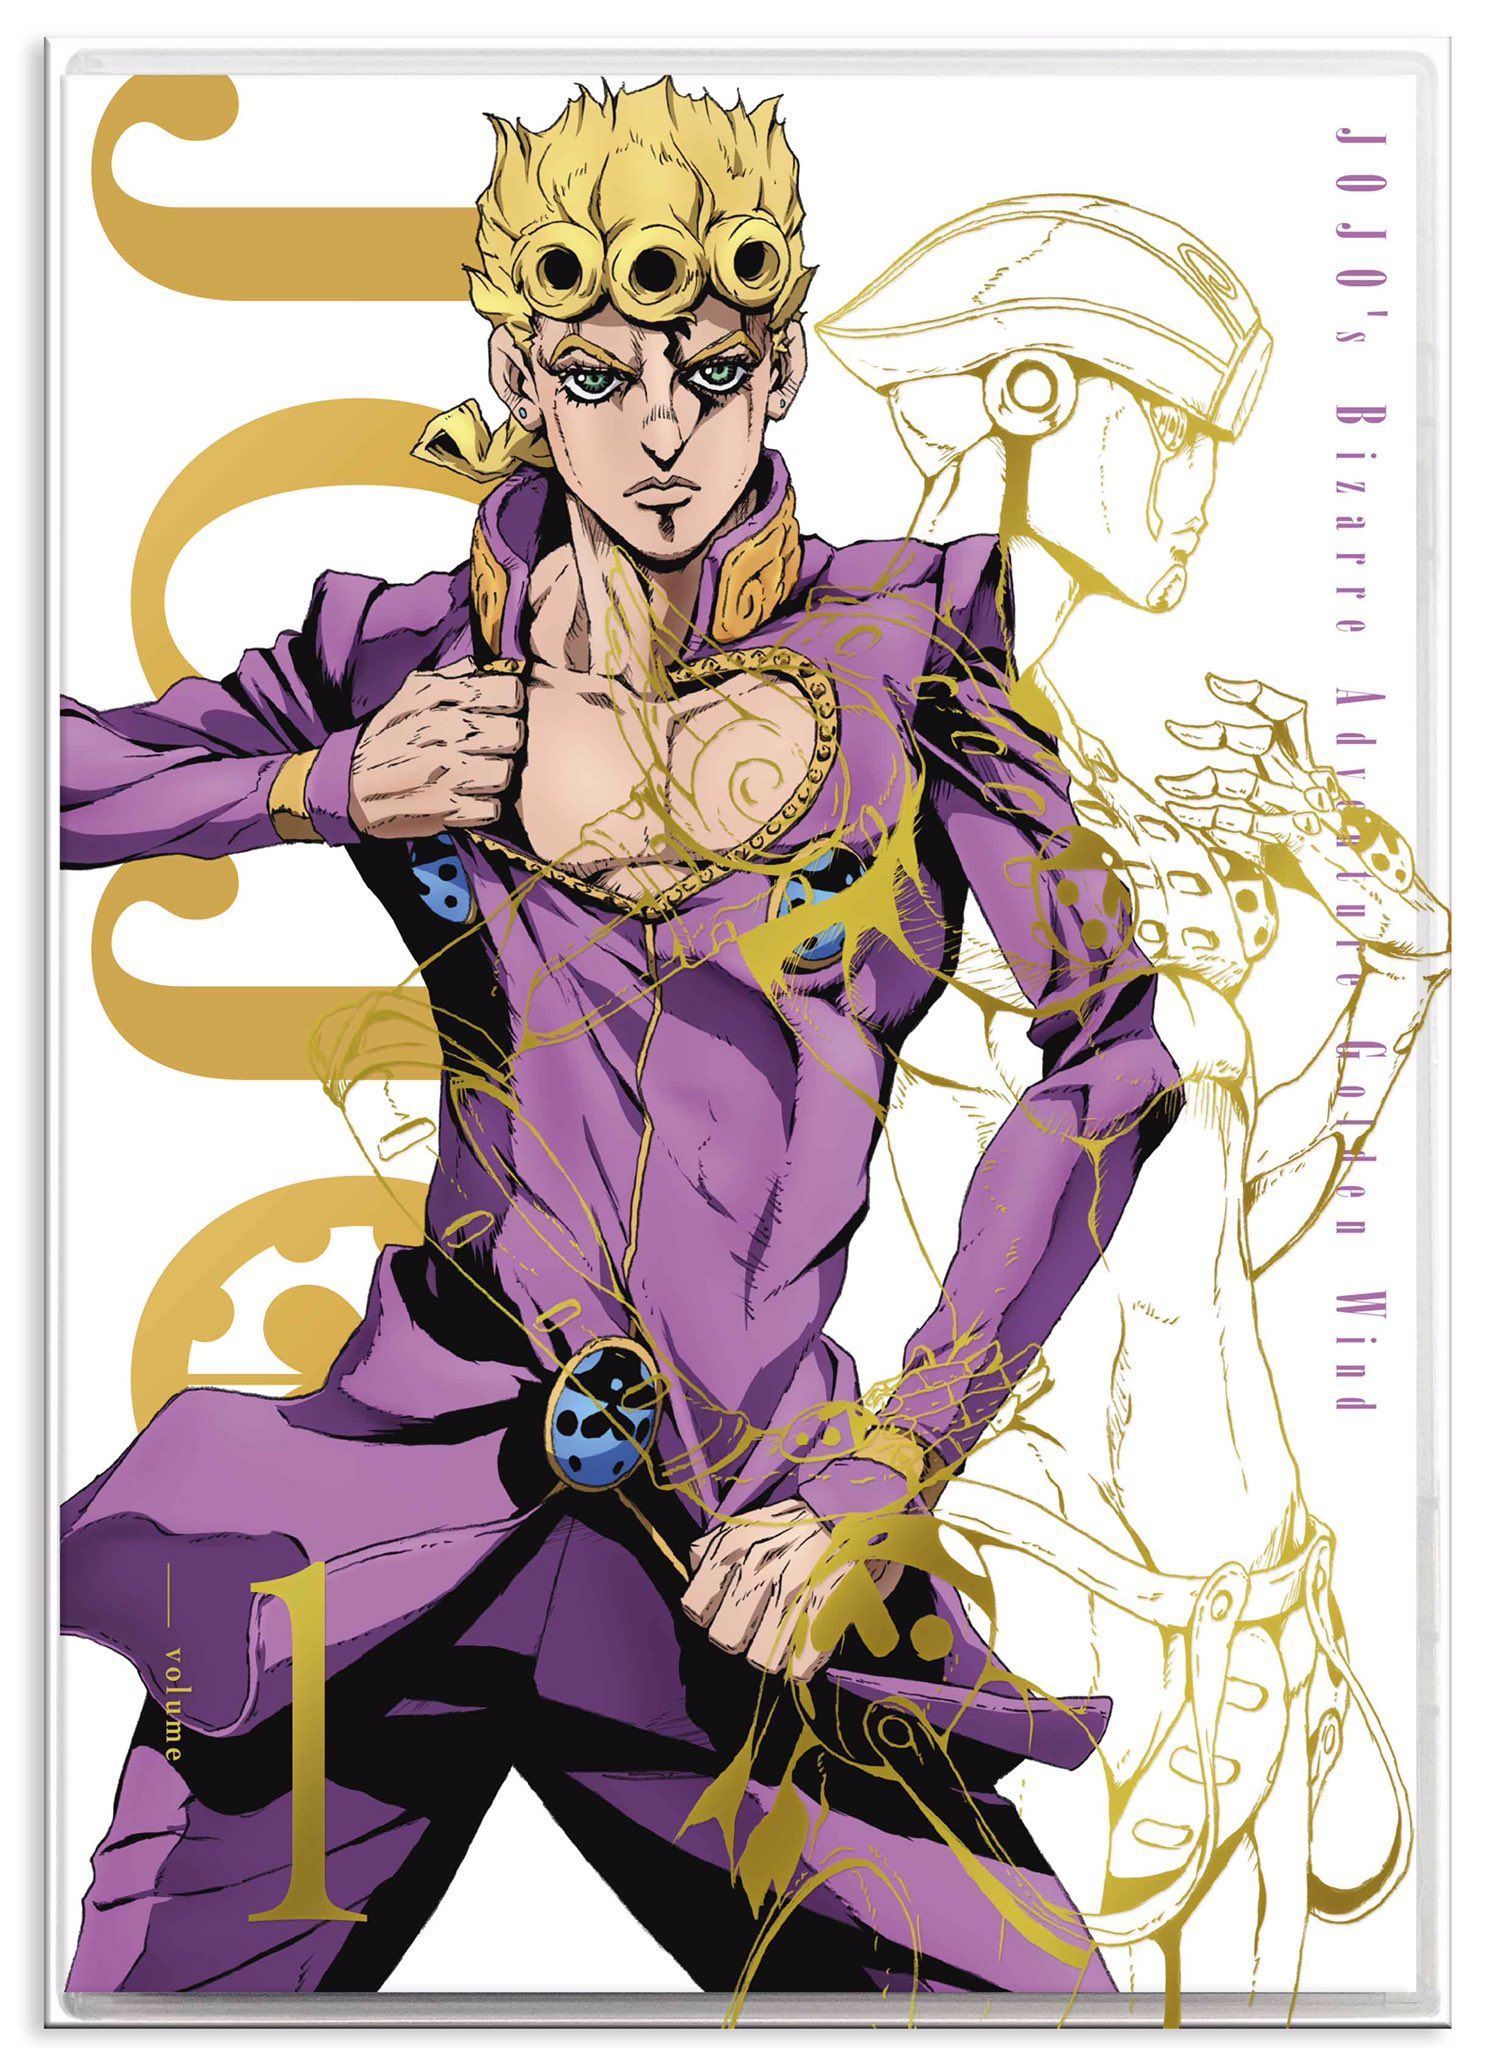 Jojo Bizarre Adventure Golden Wind : bizarre, adventure, golden, TVアニメ『ジョジョの奇妙な冒険』公式, Twitter, Parts,, Bizzare, Adventure,, Anime